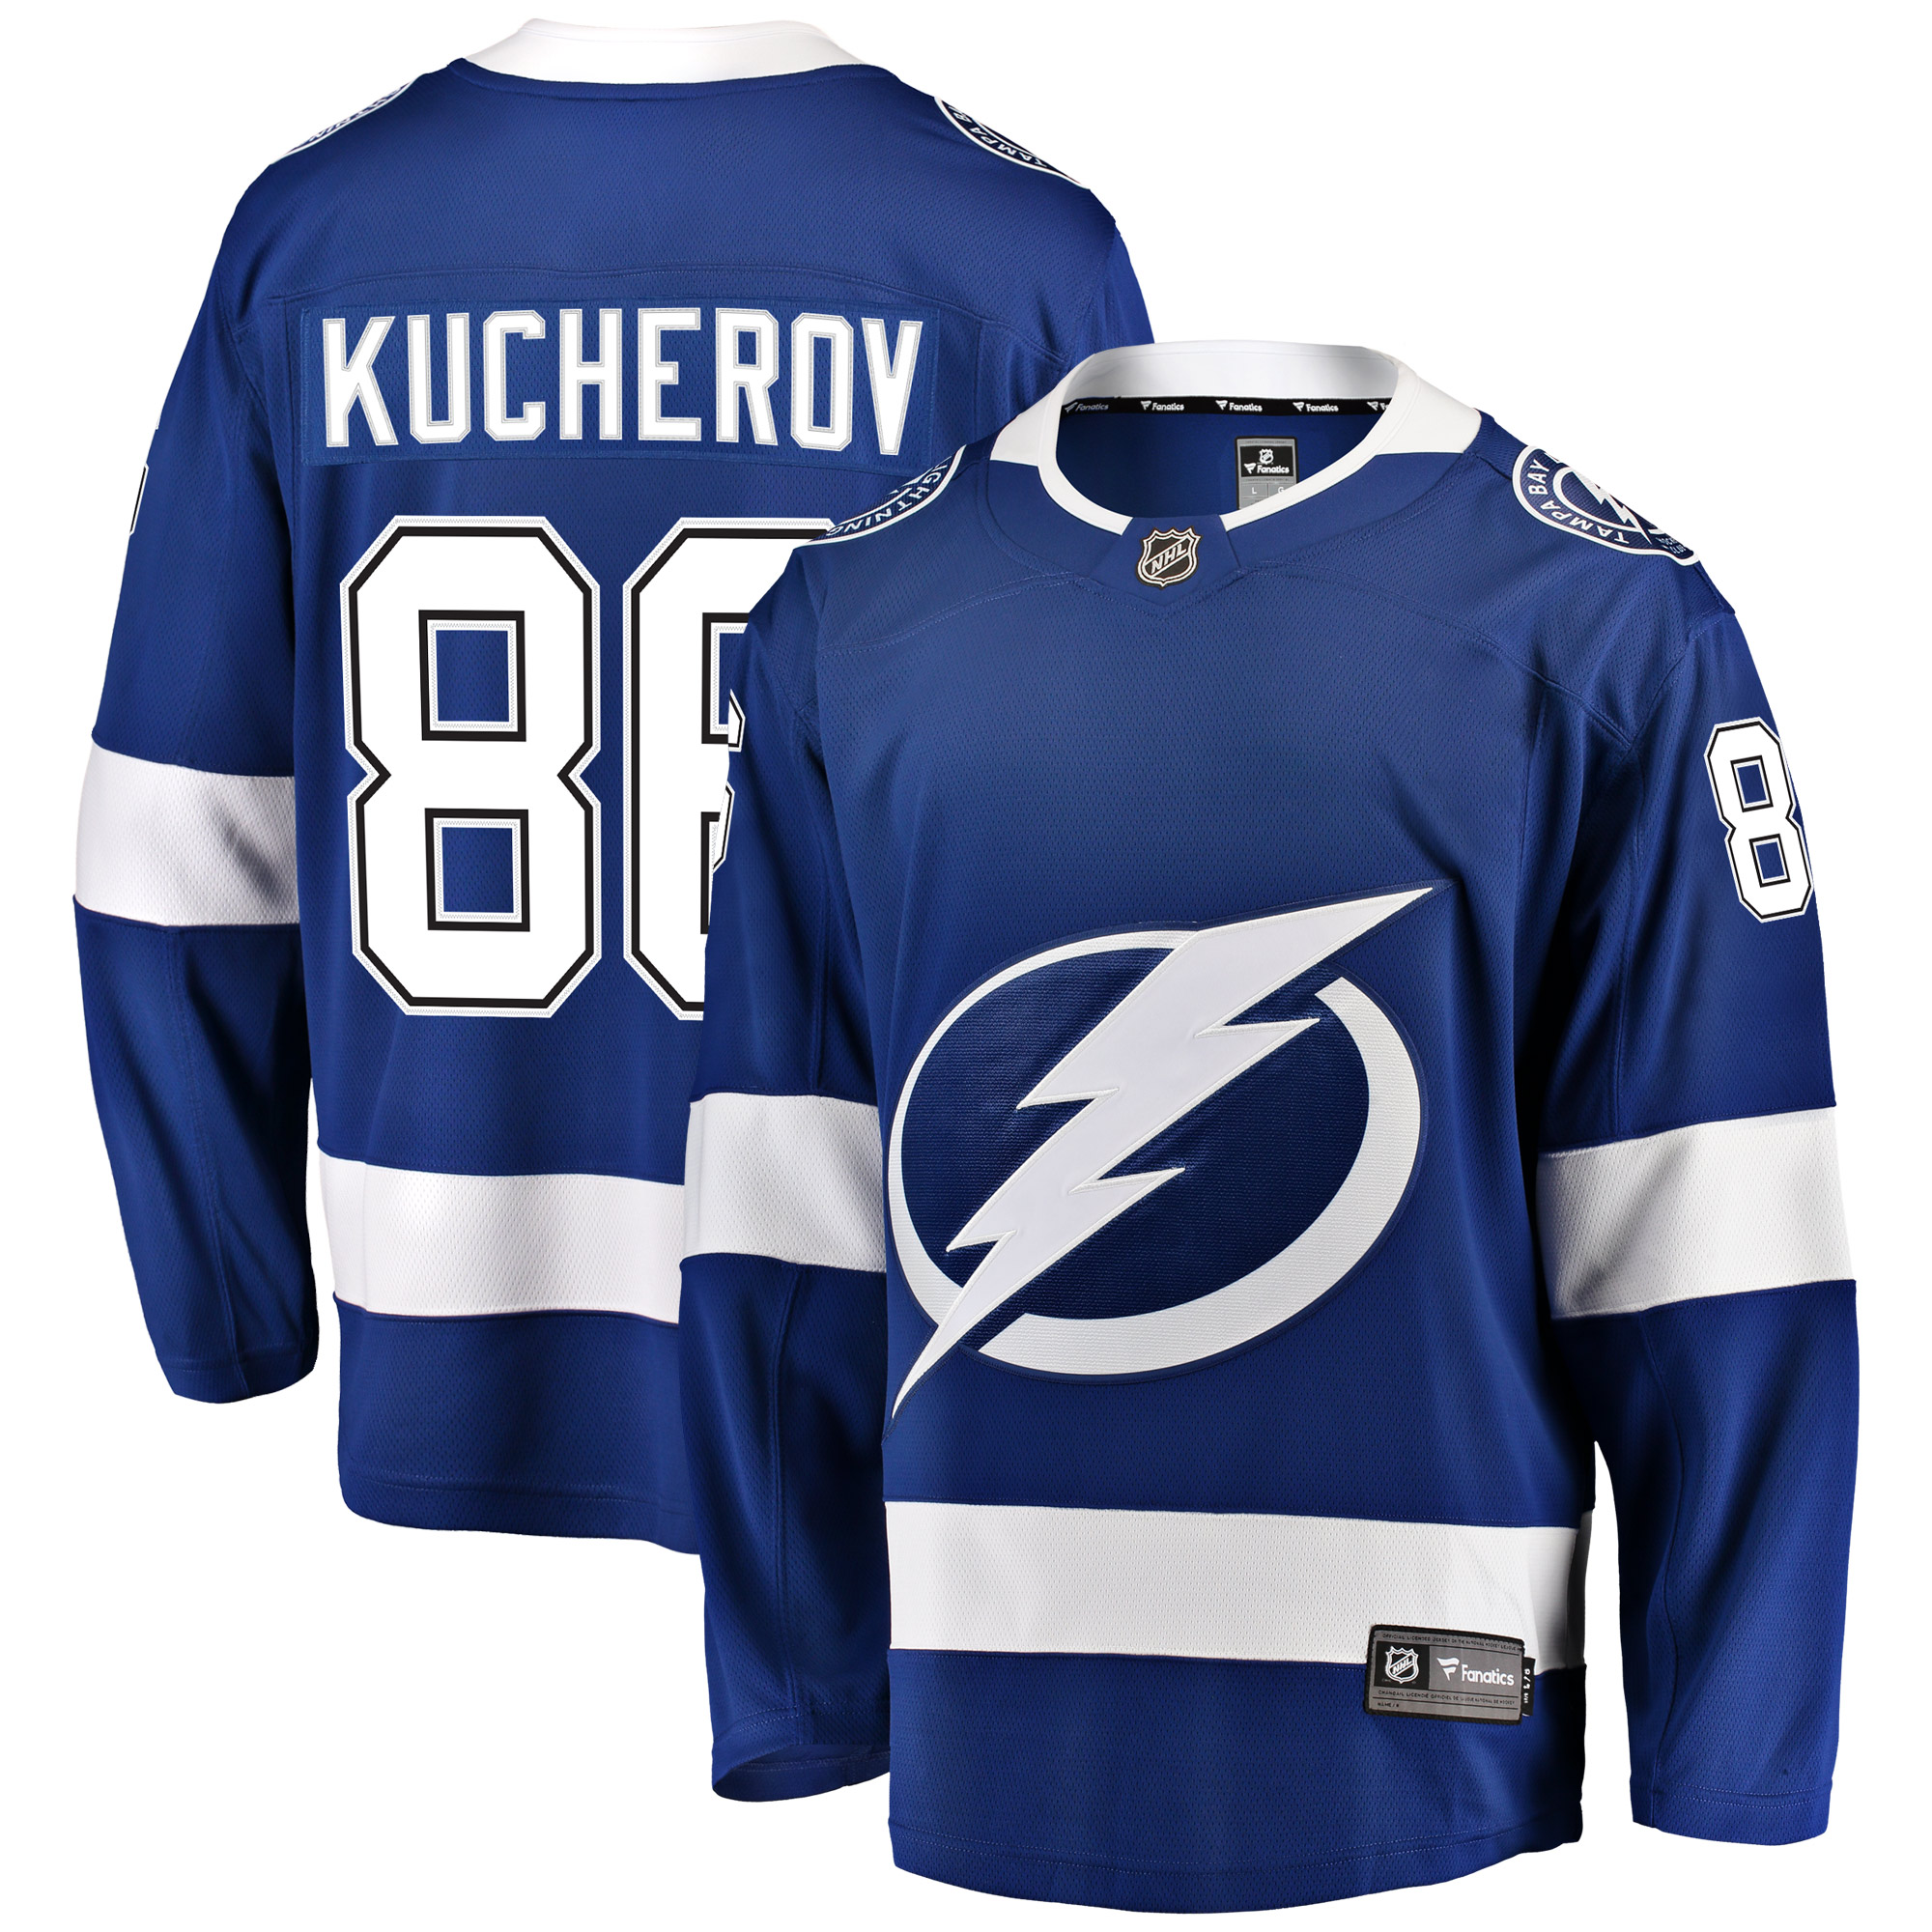 Nikita Kucherov Tampa Bay Lightning Fanatics Branded Home Breakaway Player Jersey - Blue